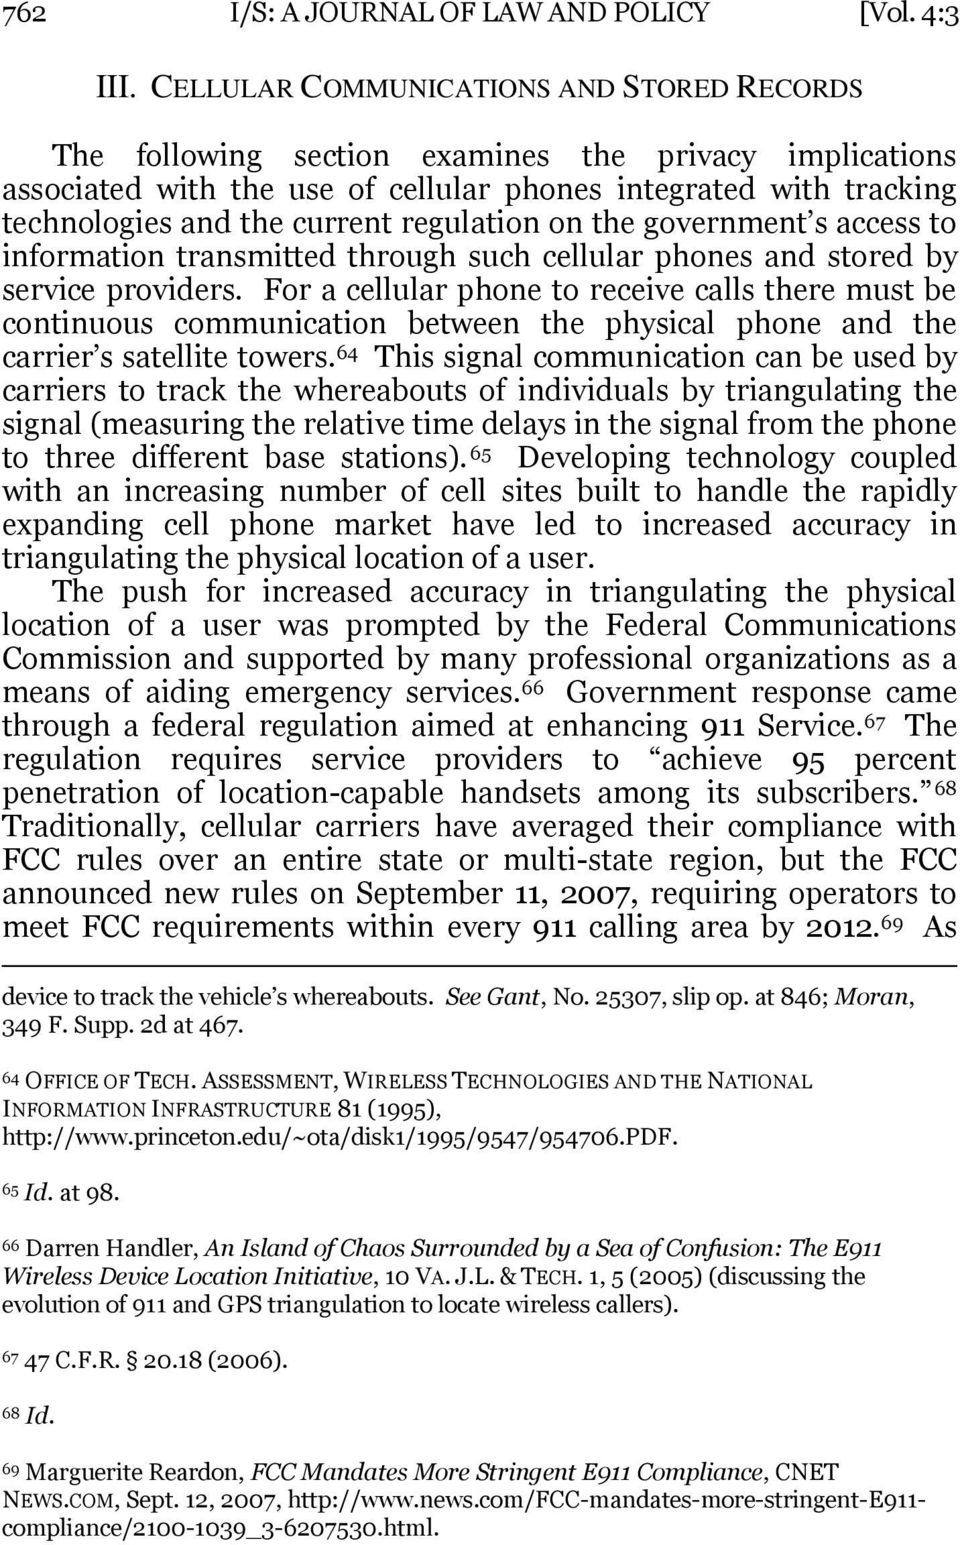 regulation on the government s access to information transmitted through such cellular phones and stored by service providers.